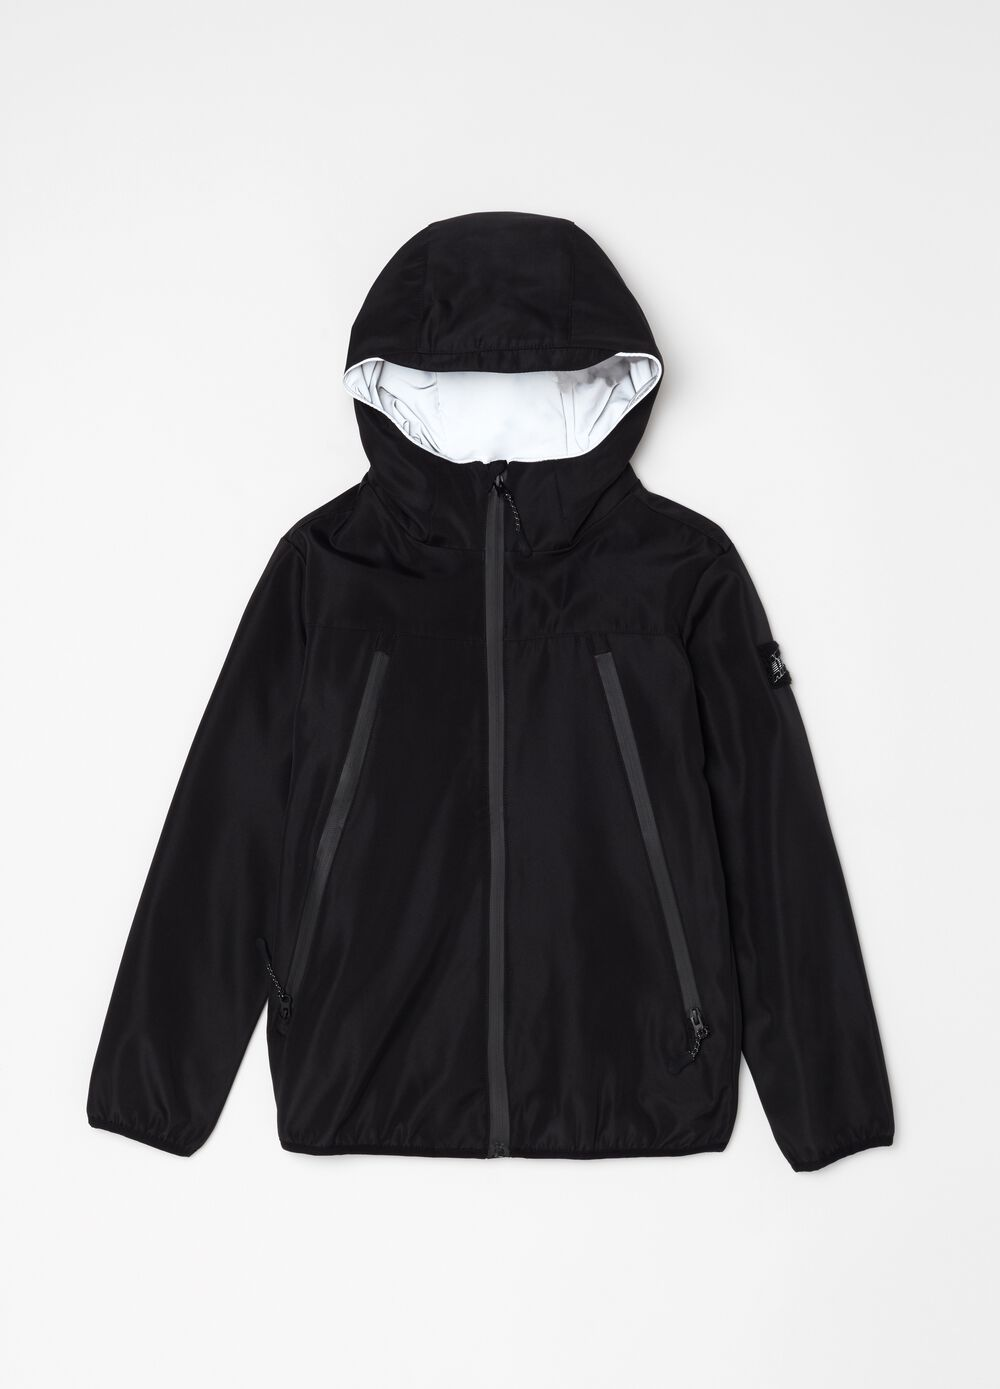 Soft windbreaker with large pockets